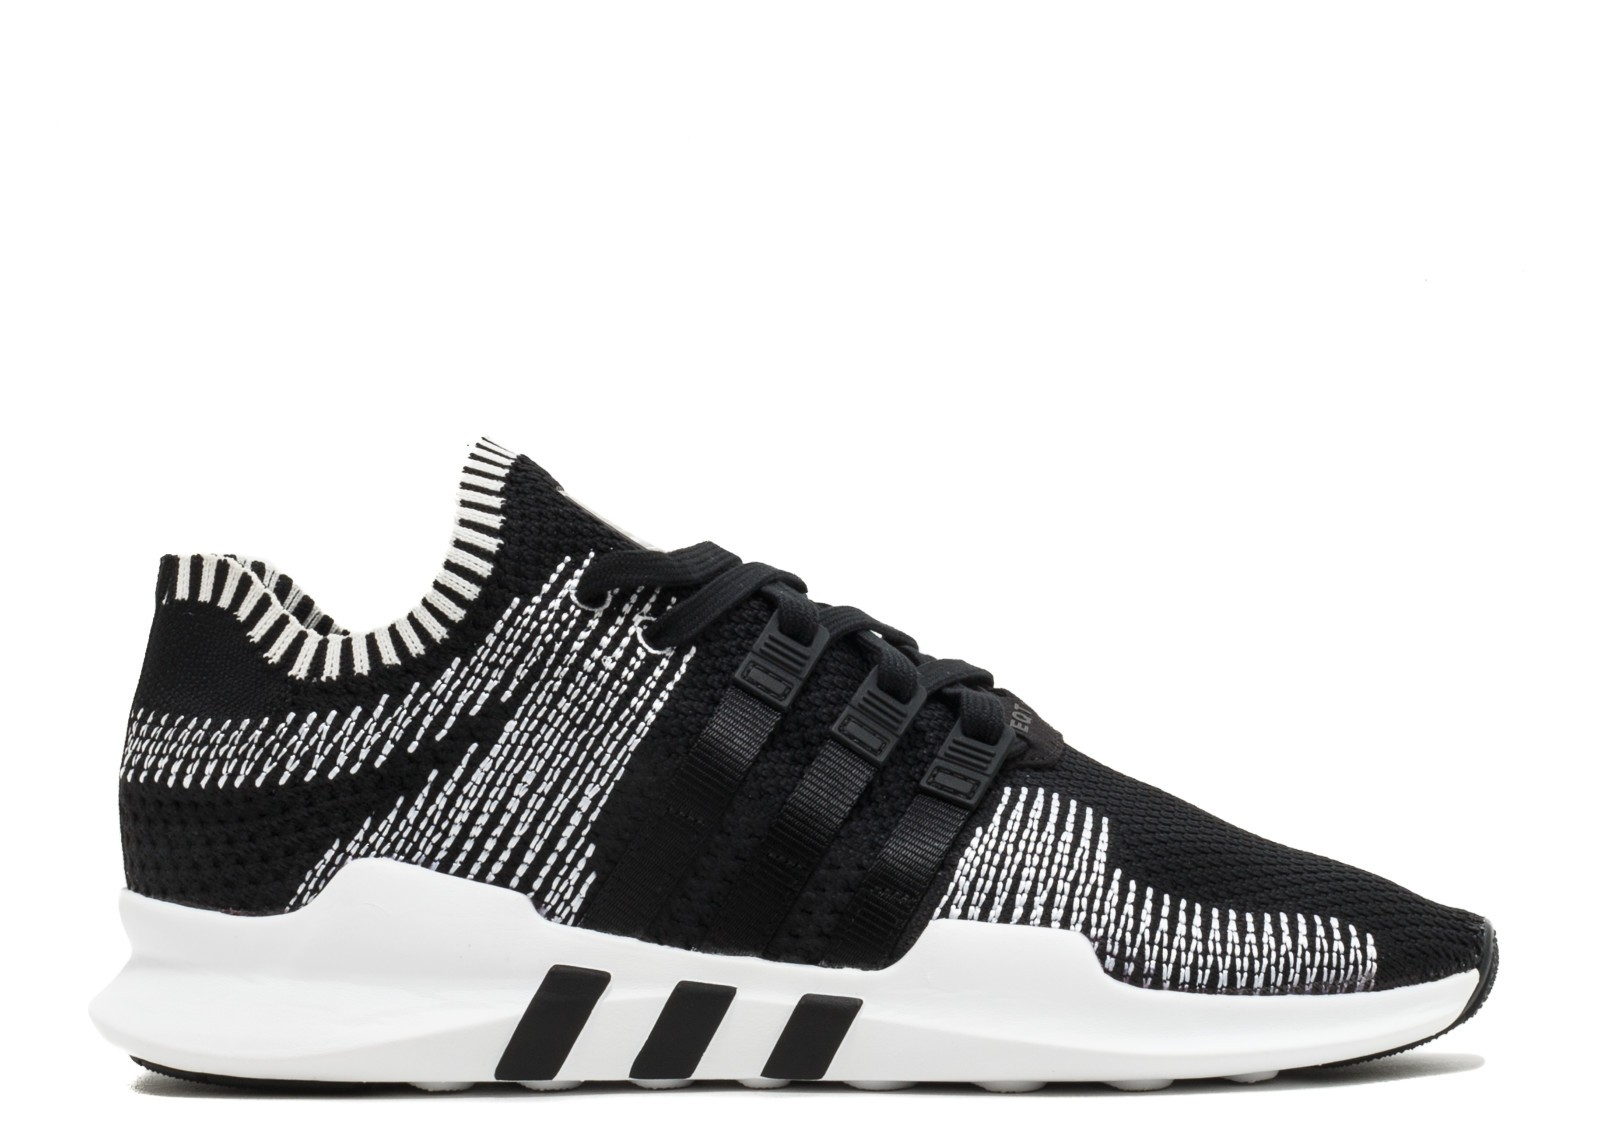 Adidas EQT Support ADV PK Skor BY9390